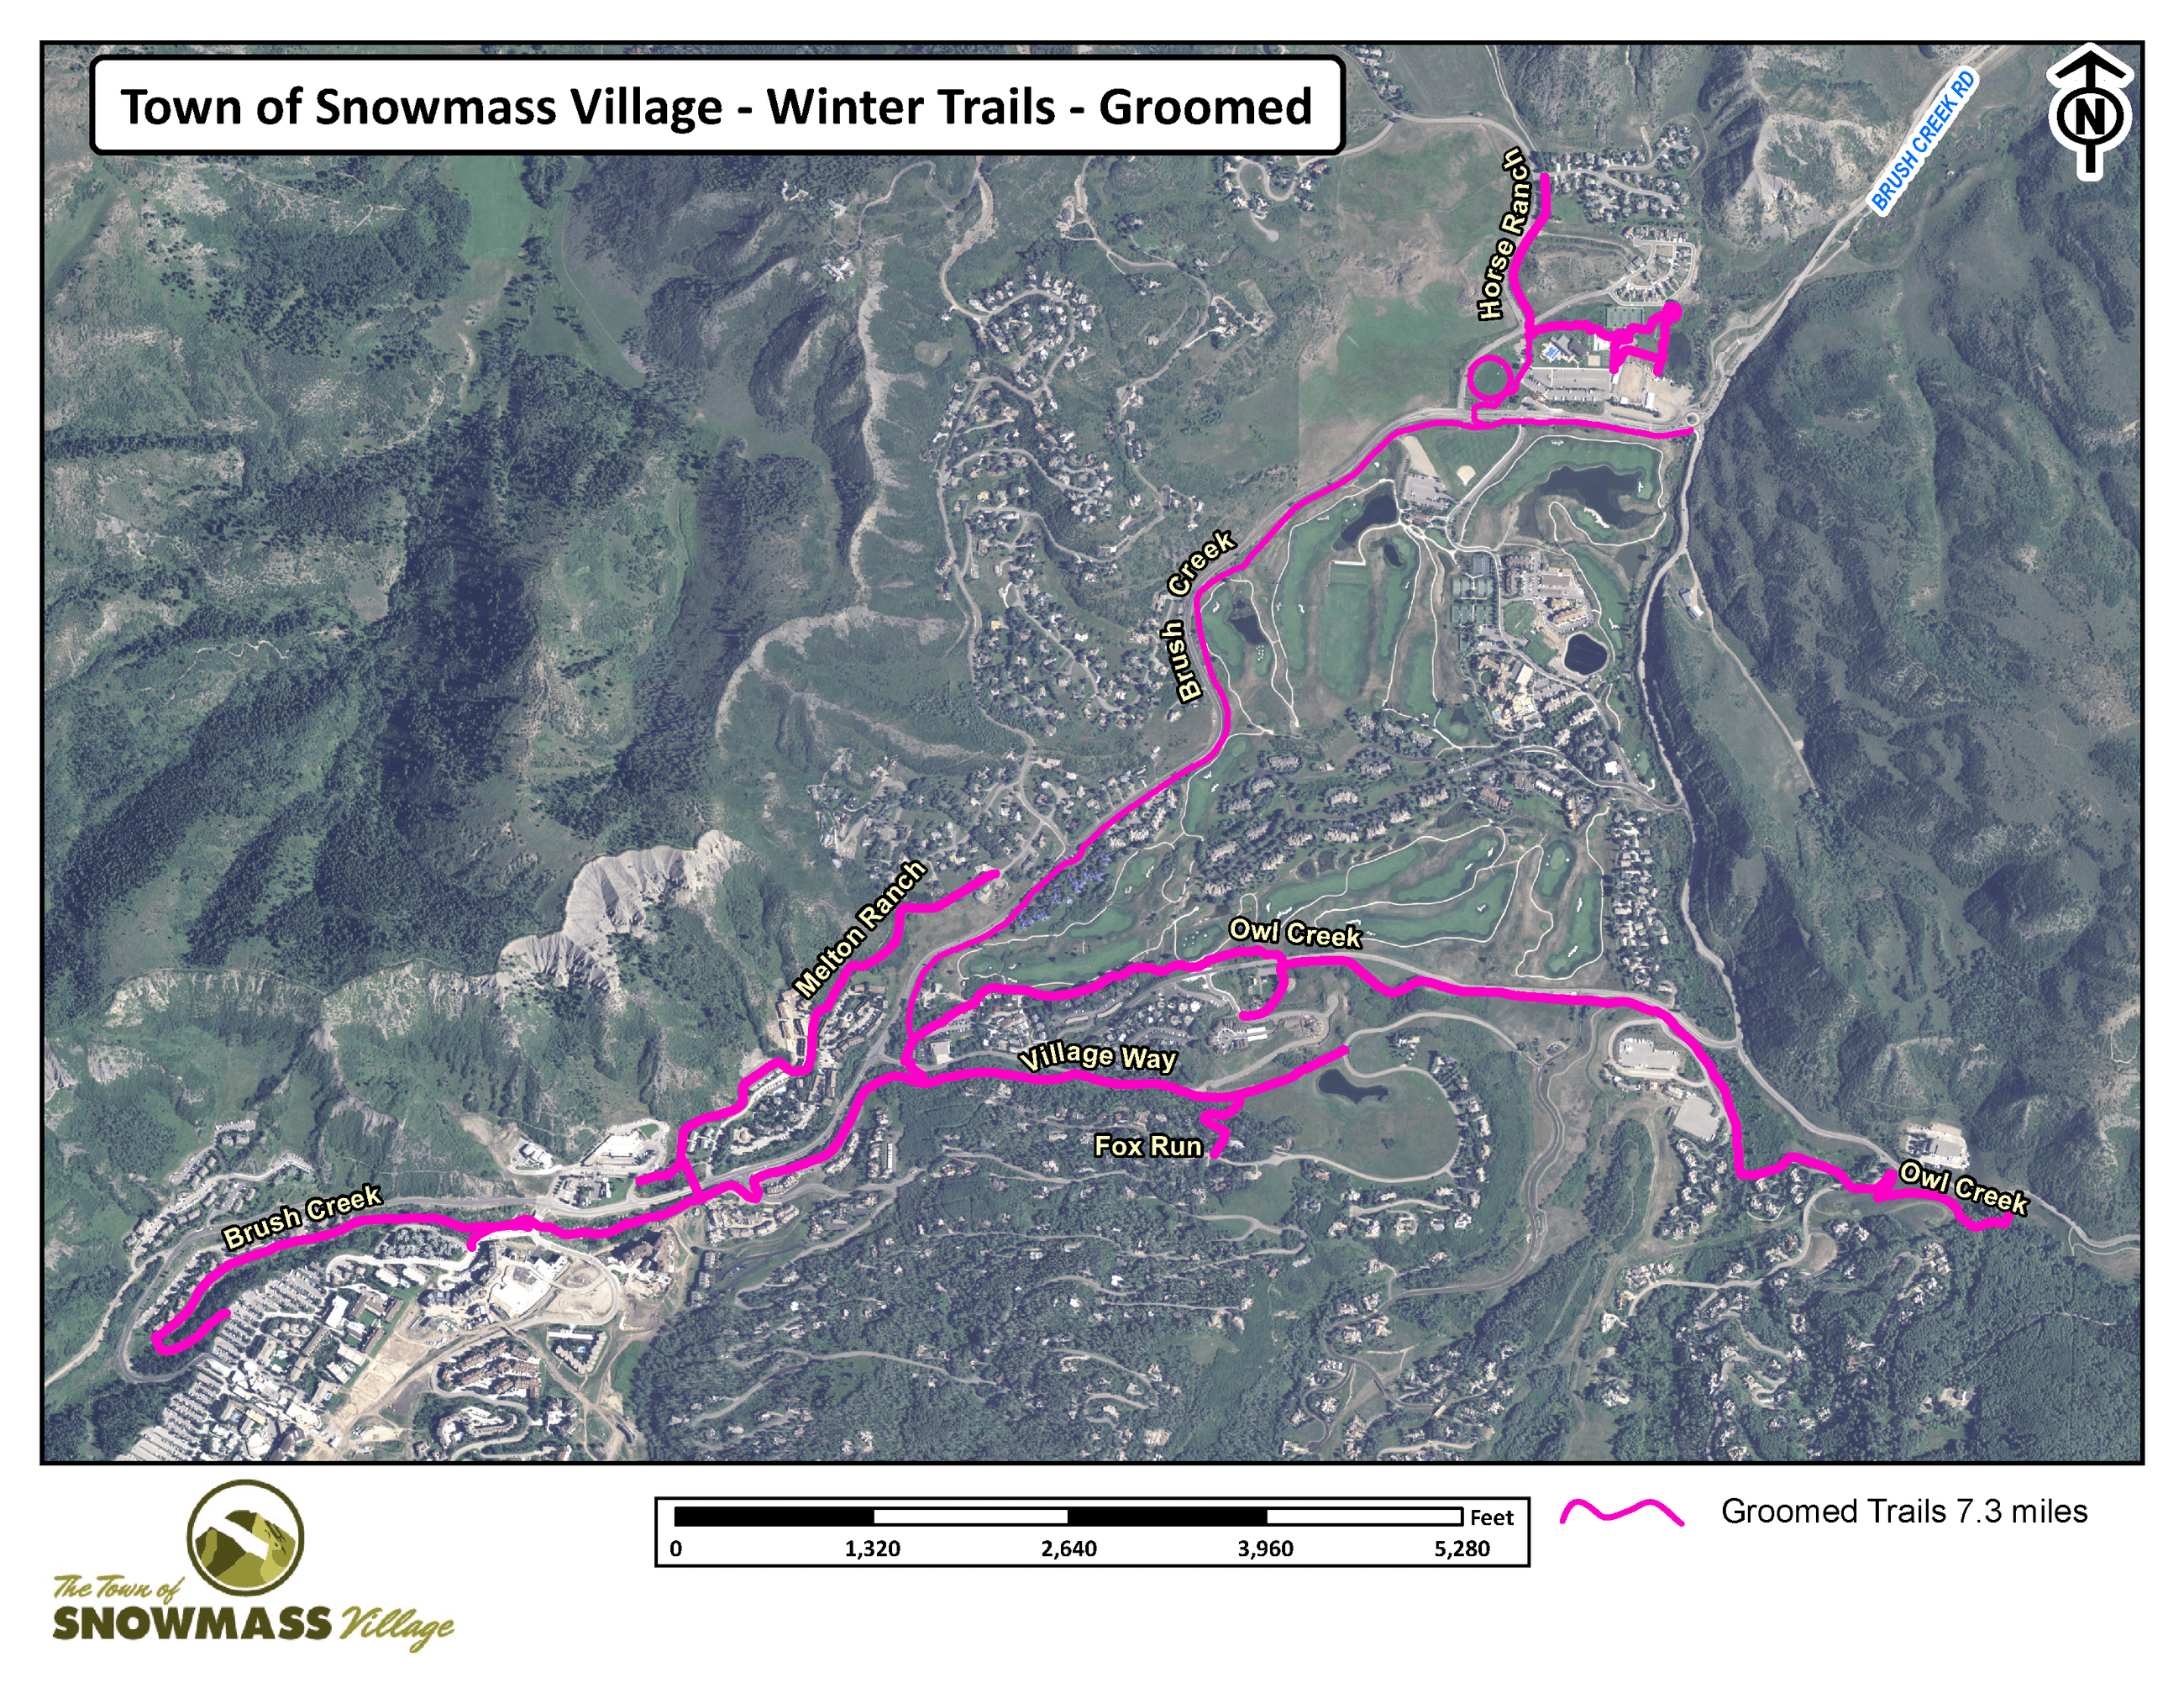 Town of Snowmass Winter Trails